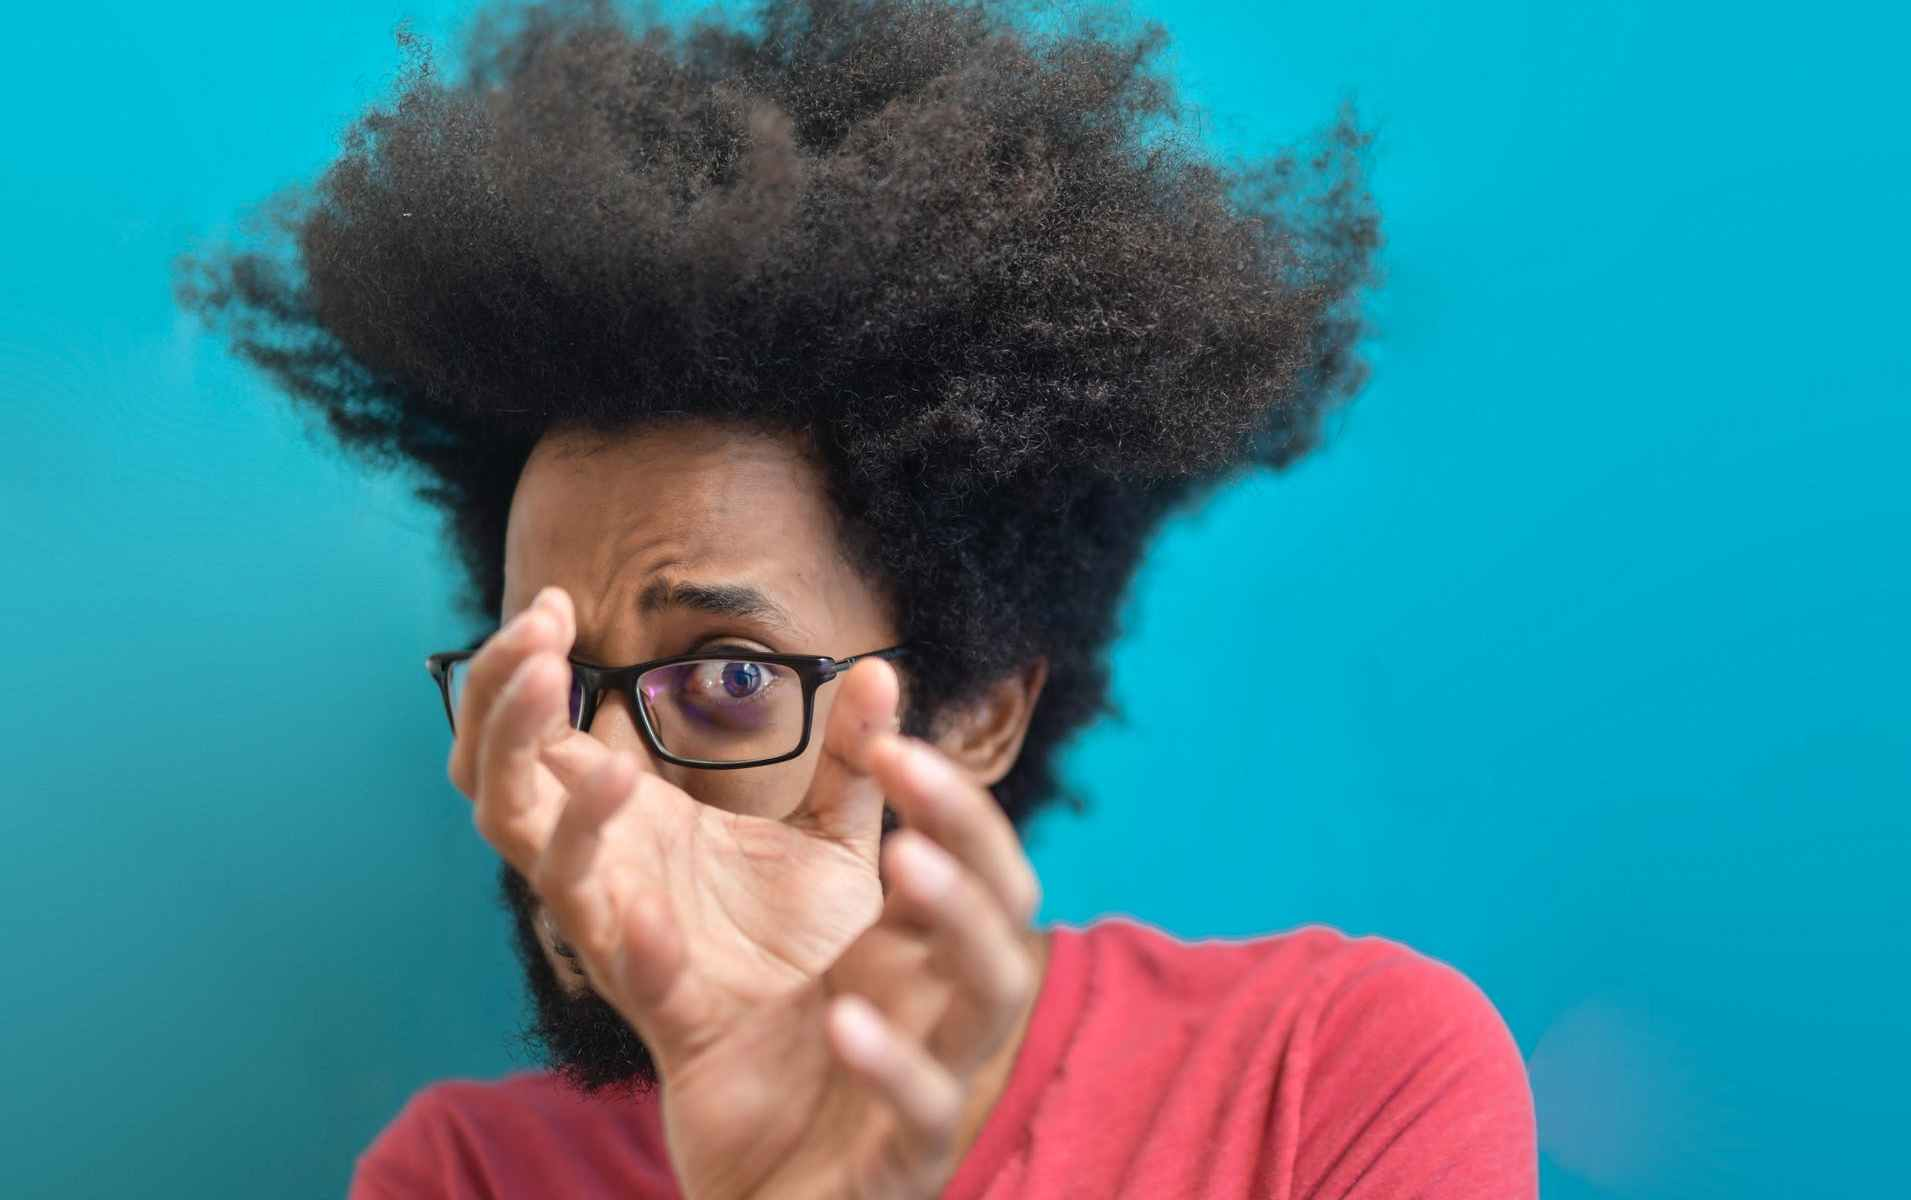 Black man with afro and glasses holding hands in front of left eye